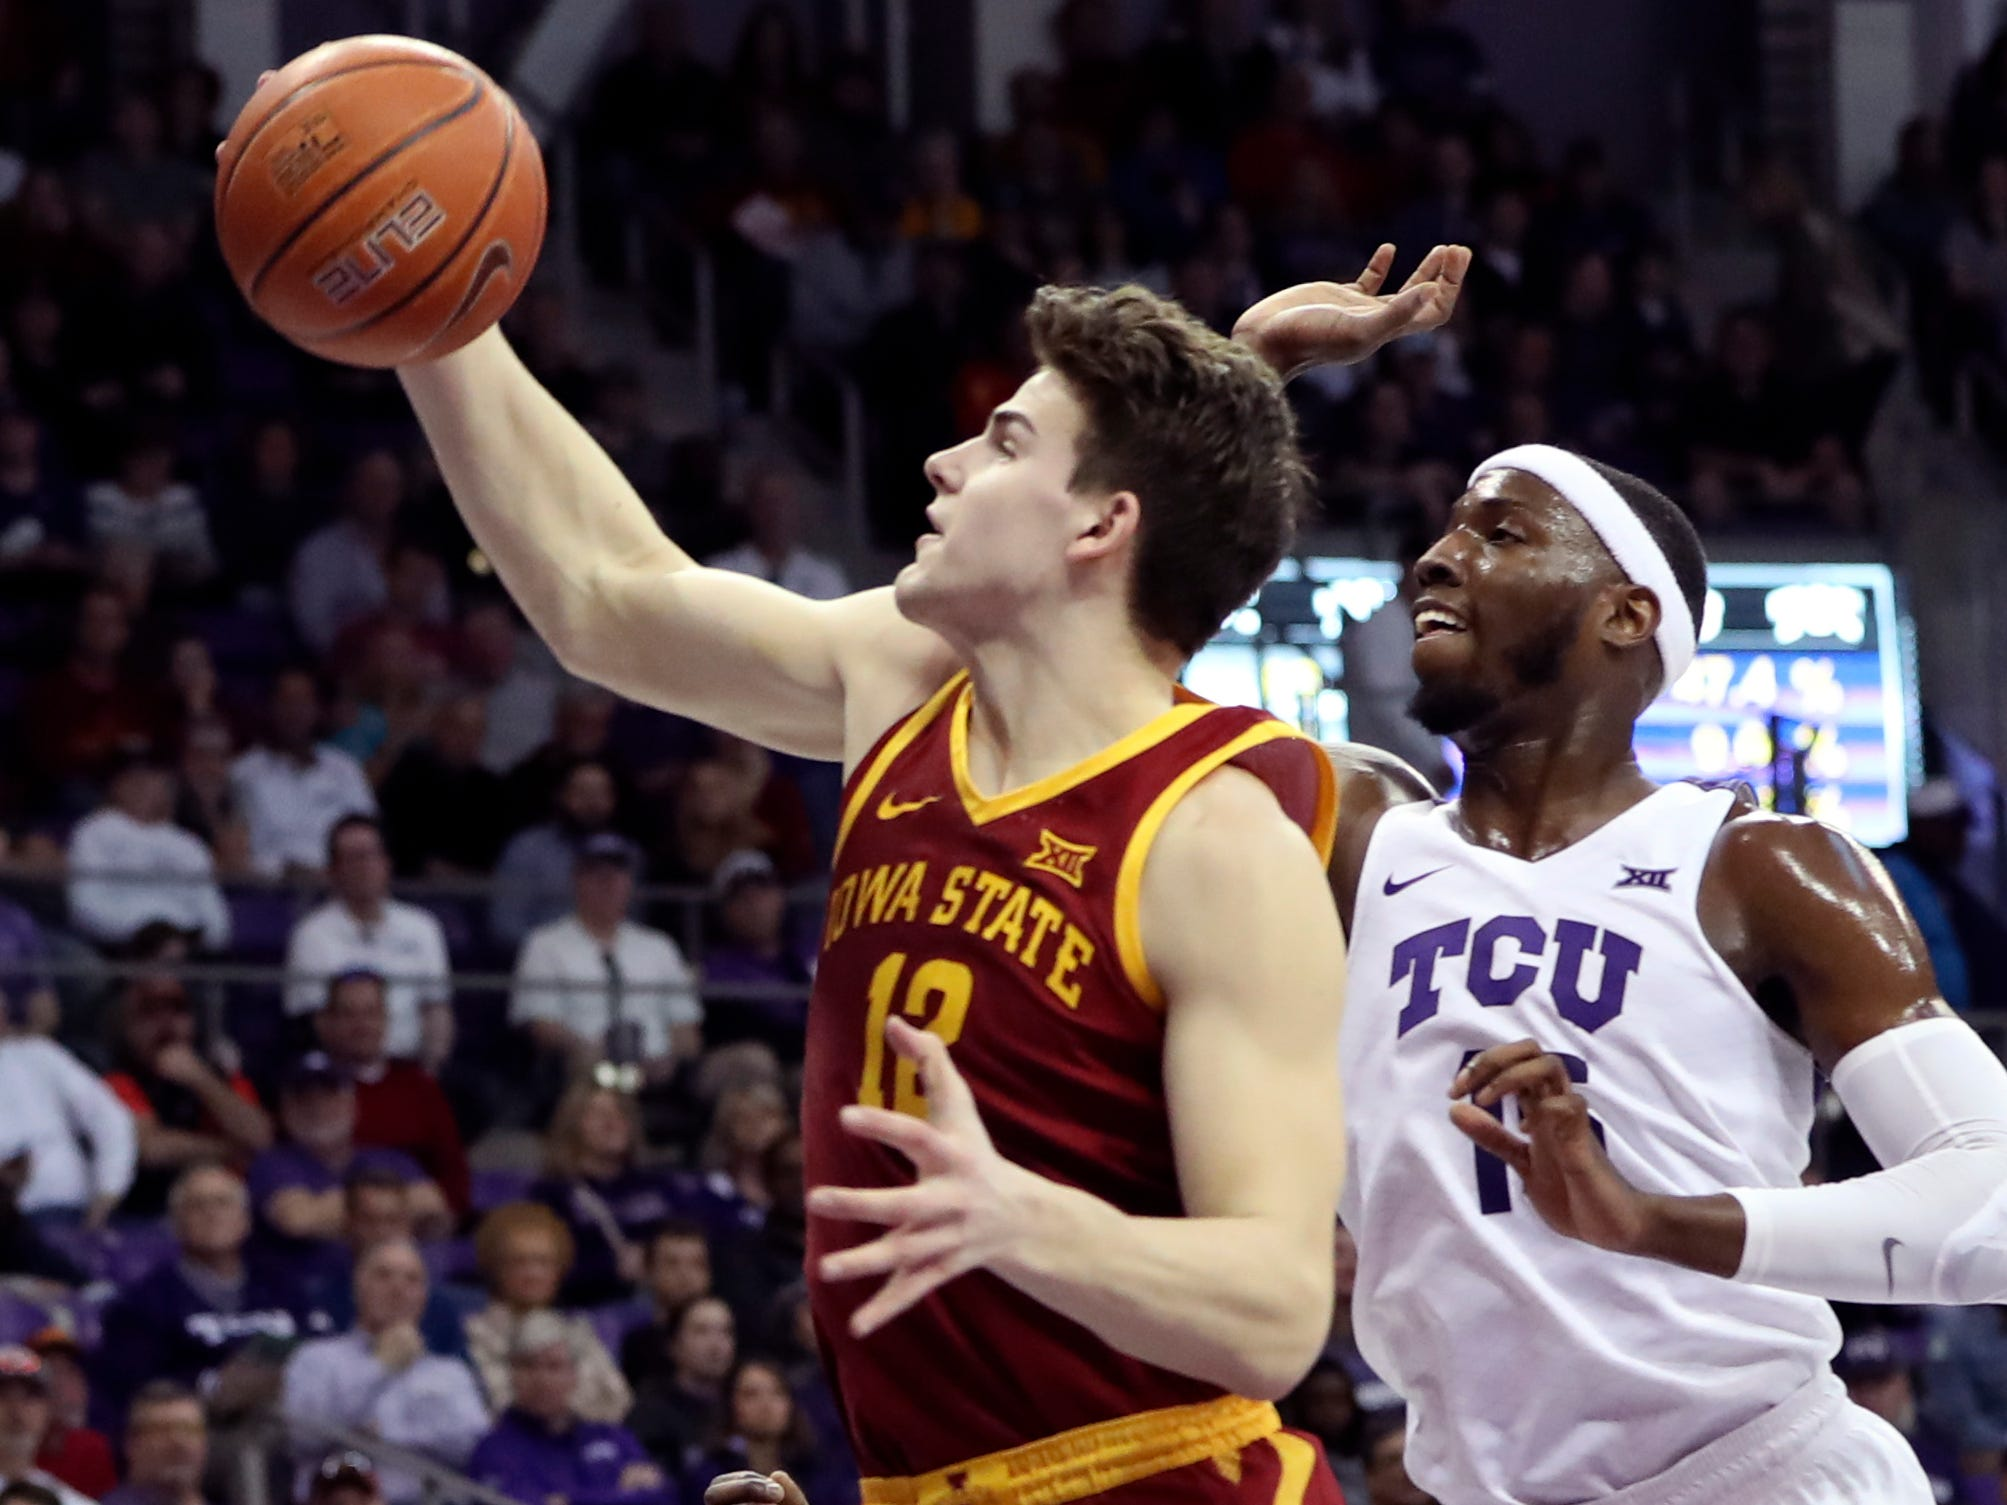 Feb 23, 2019; Fort Worth, TX, USA; Iowa State Cyclones forward Michael Jacobson (12) grabs a rebound past TCU Horned Frogs forward JD Miller (15) during the first half at Ed and Rae Schollmaier Arena.